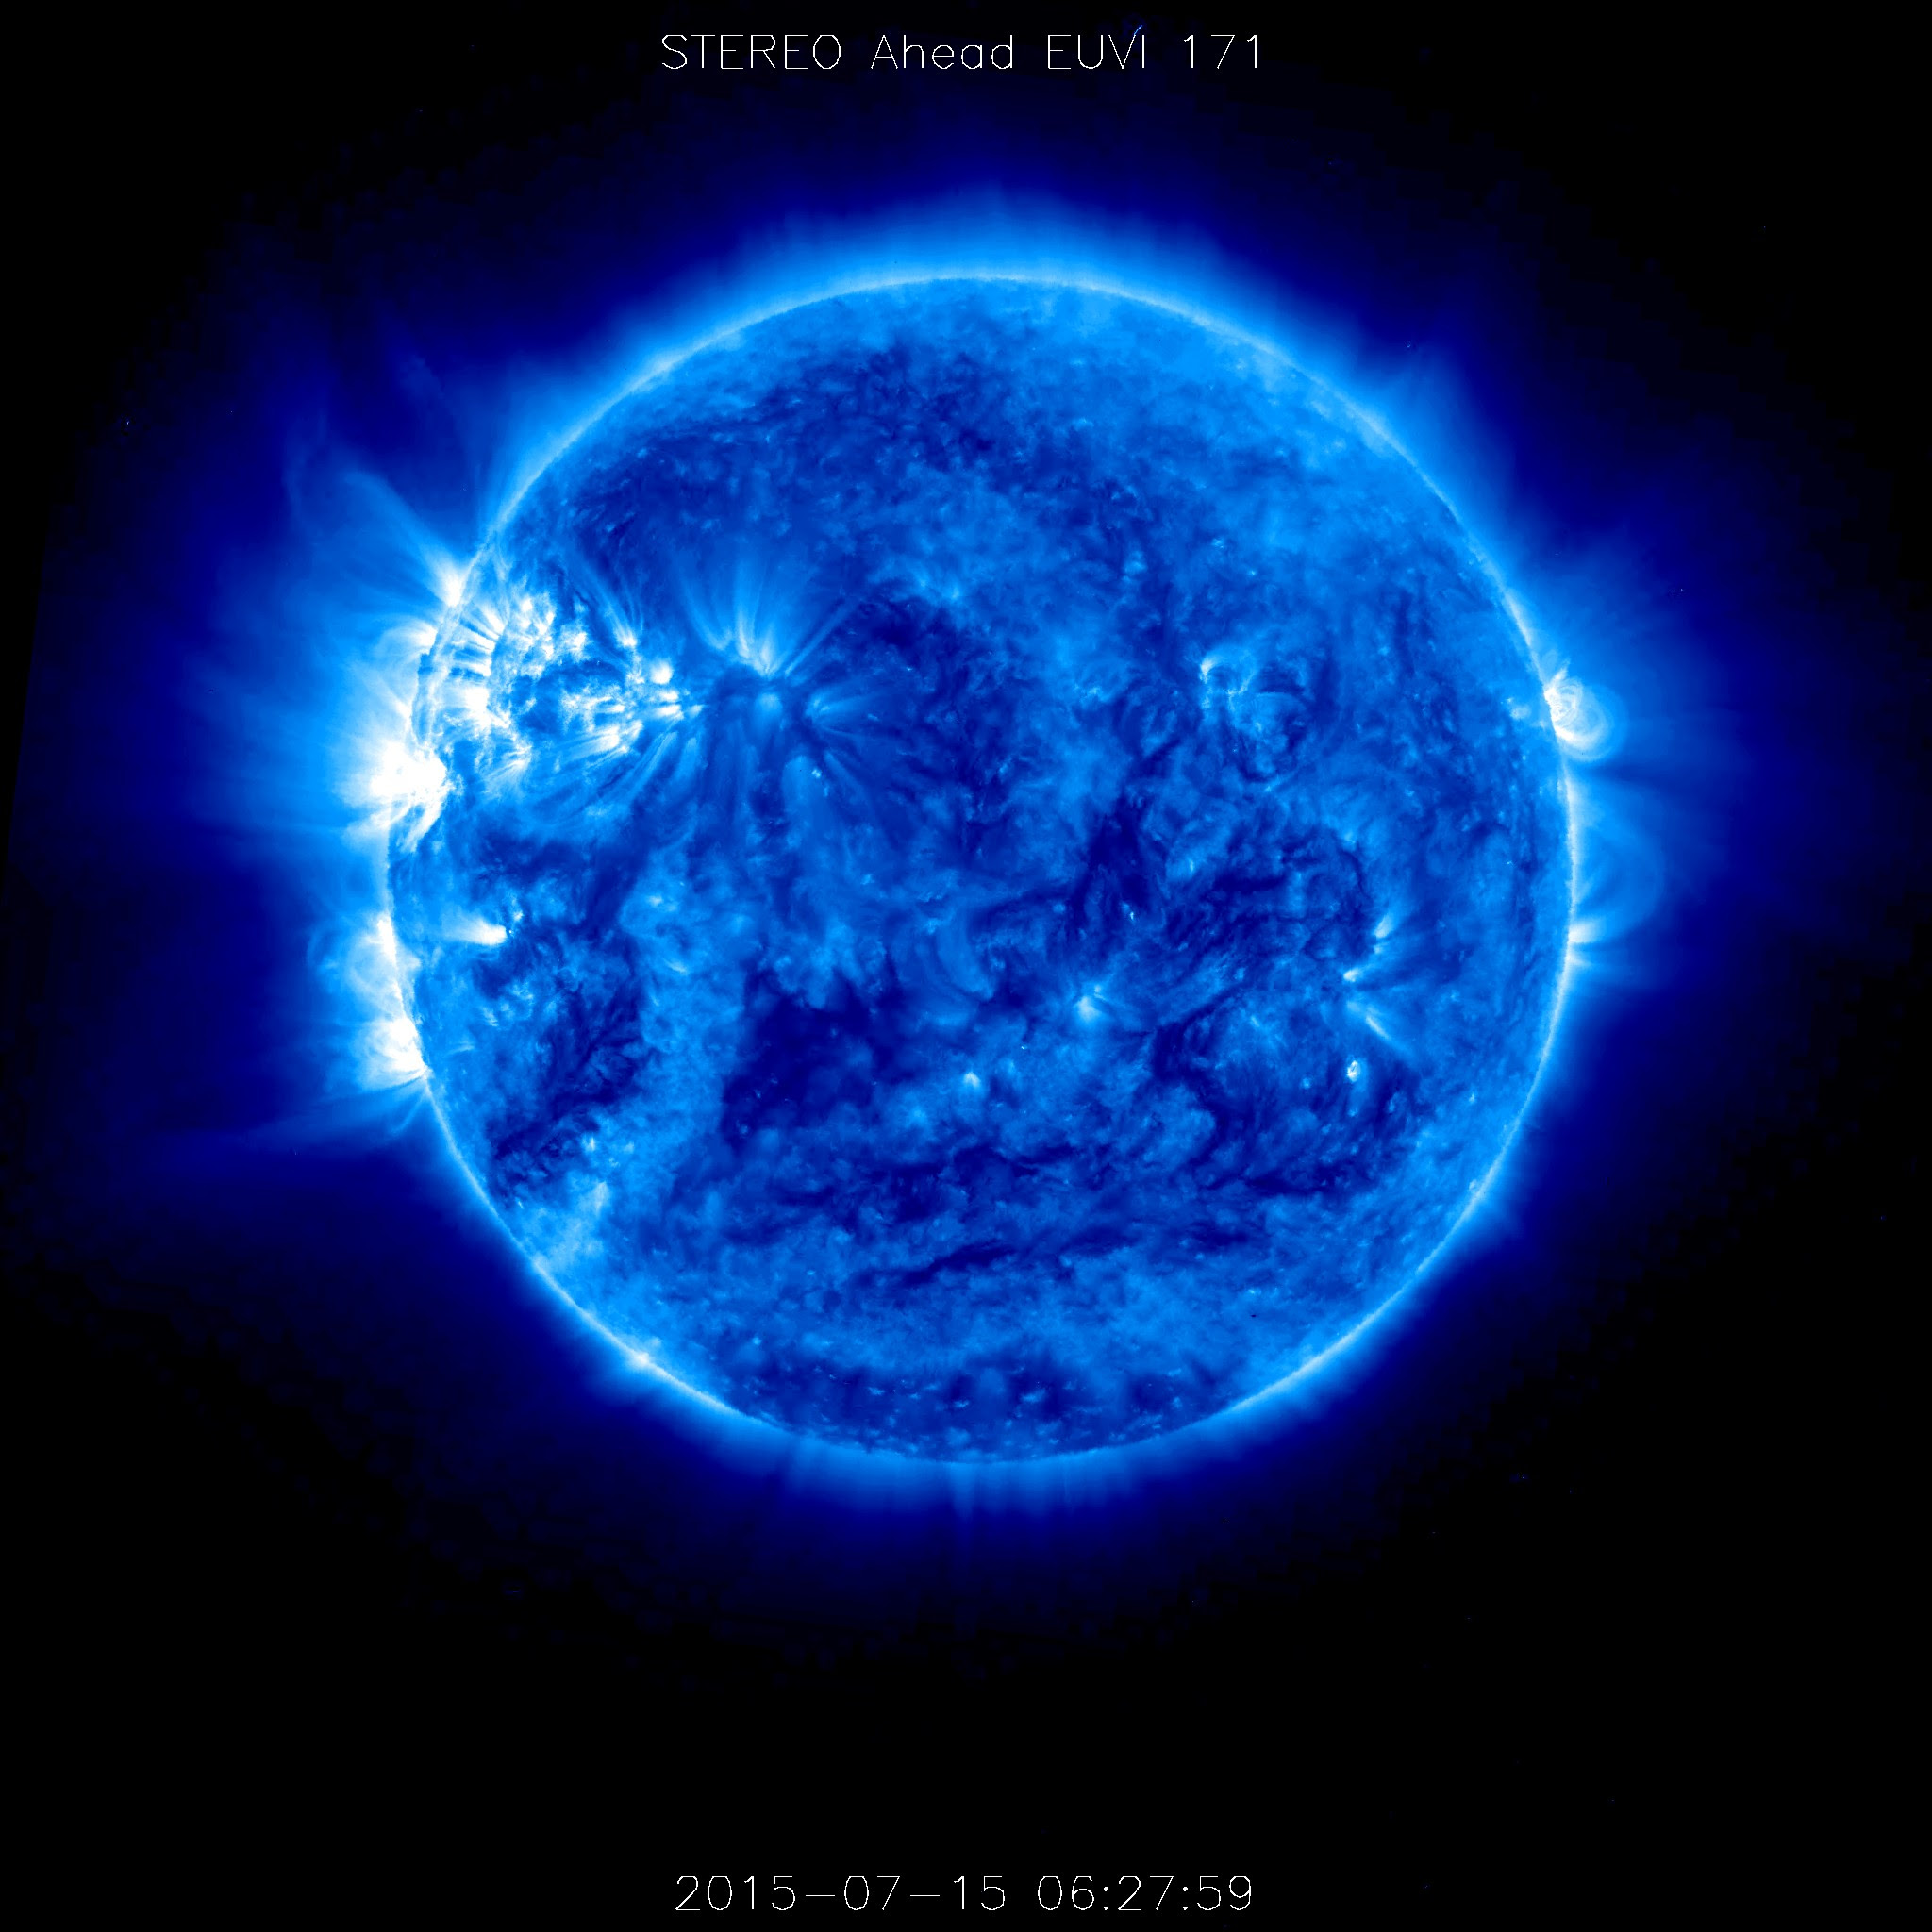 STEREO-A Spacecraft Returns Data From the Far Side of the Sun